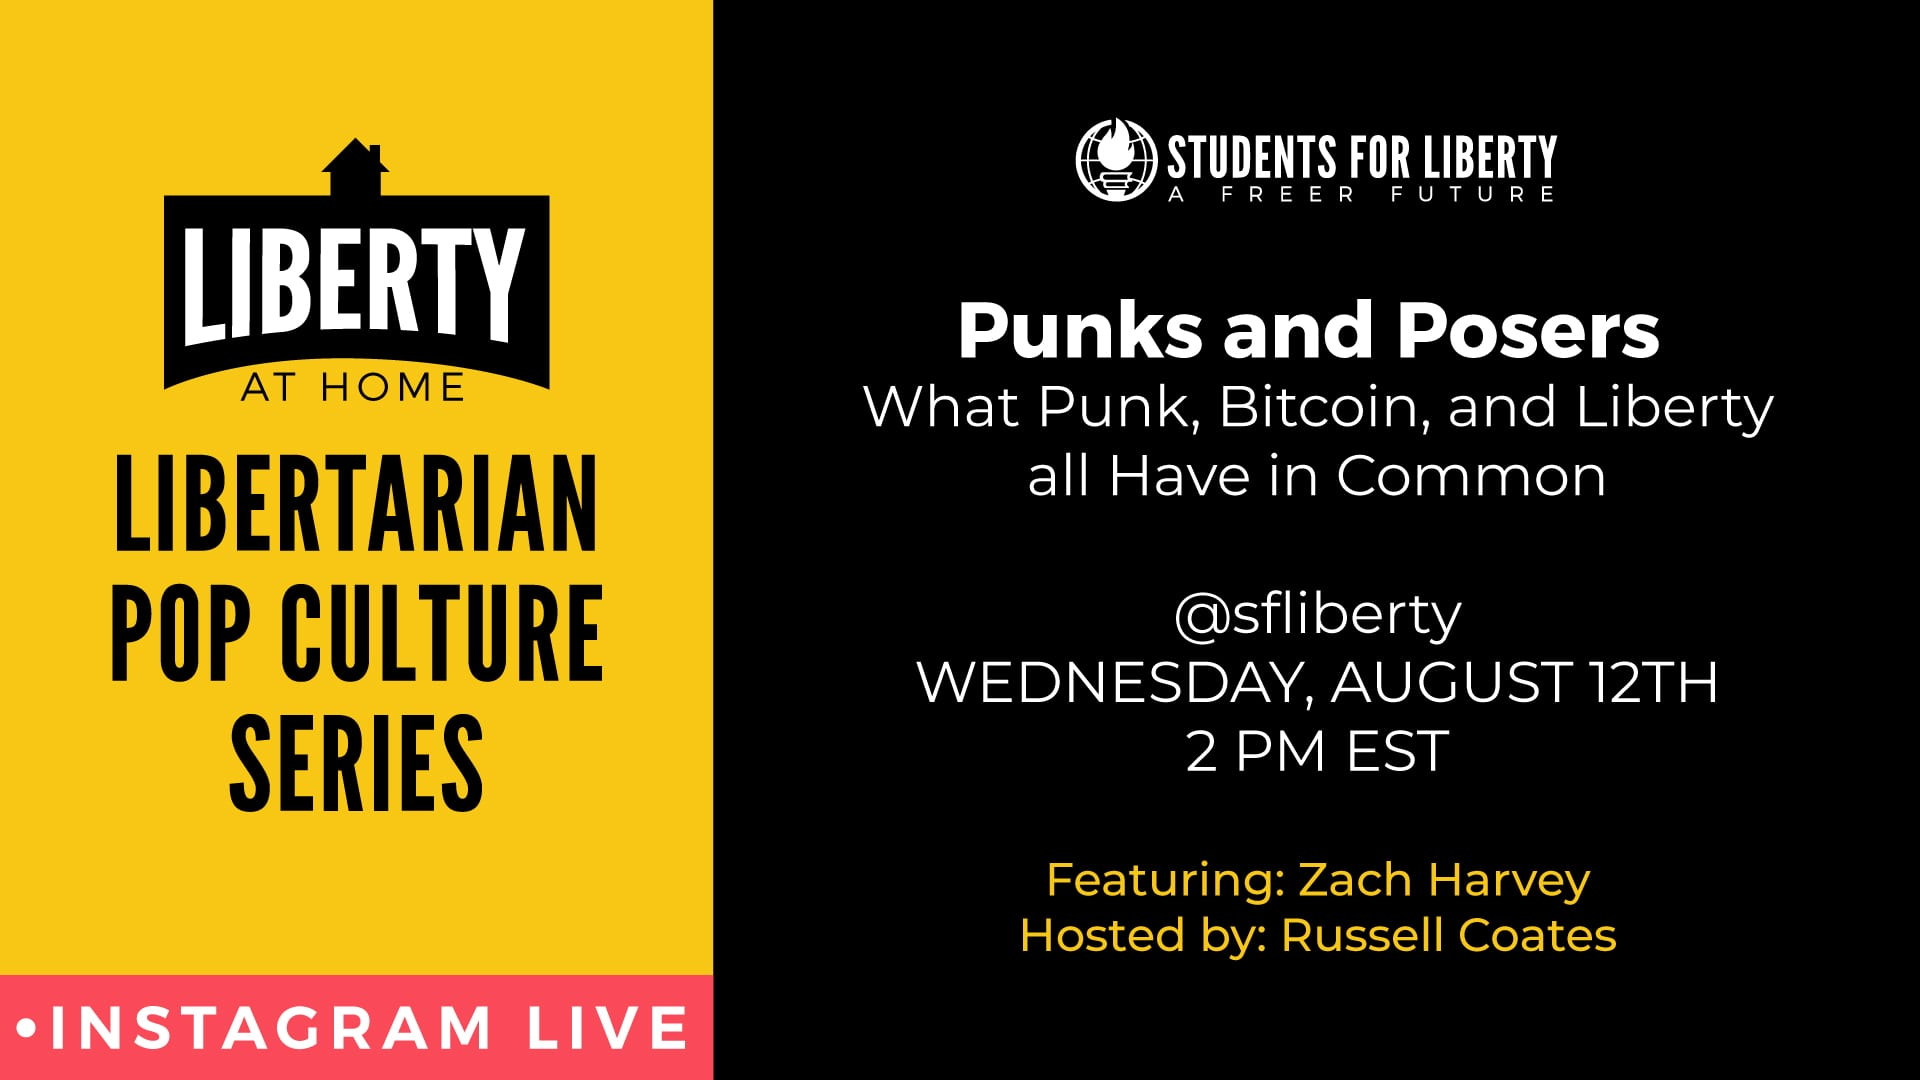 Punks and Posers: What Punk, Bitcoin, and Liberty all Have in Common. Instagram Live interview with Zach Harvey